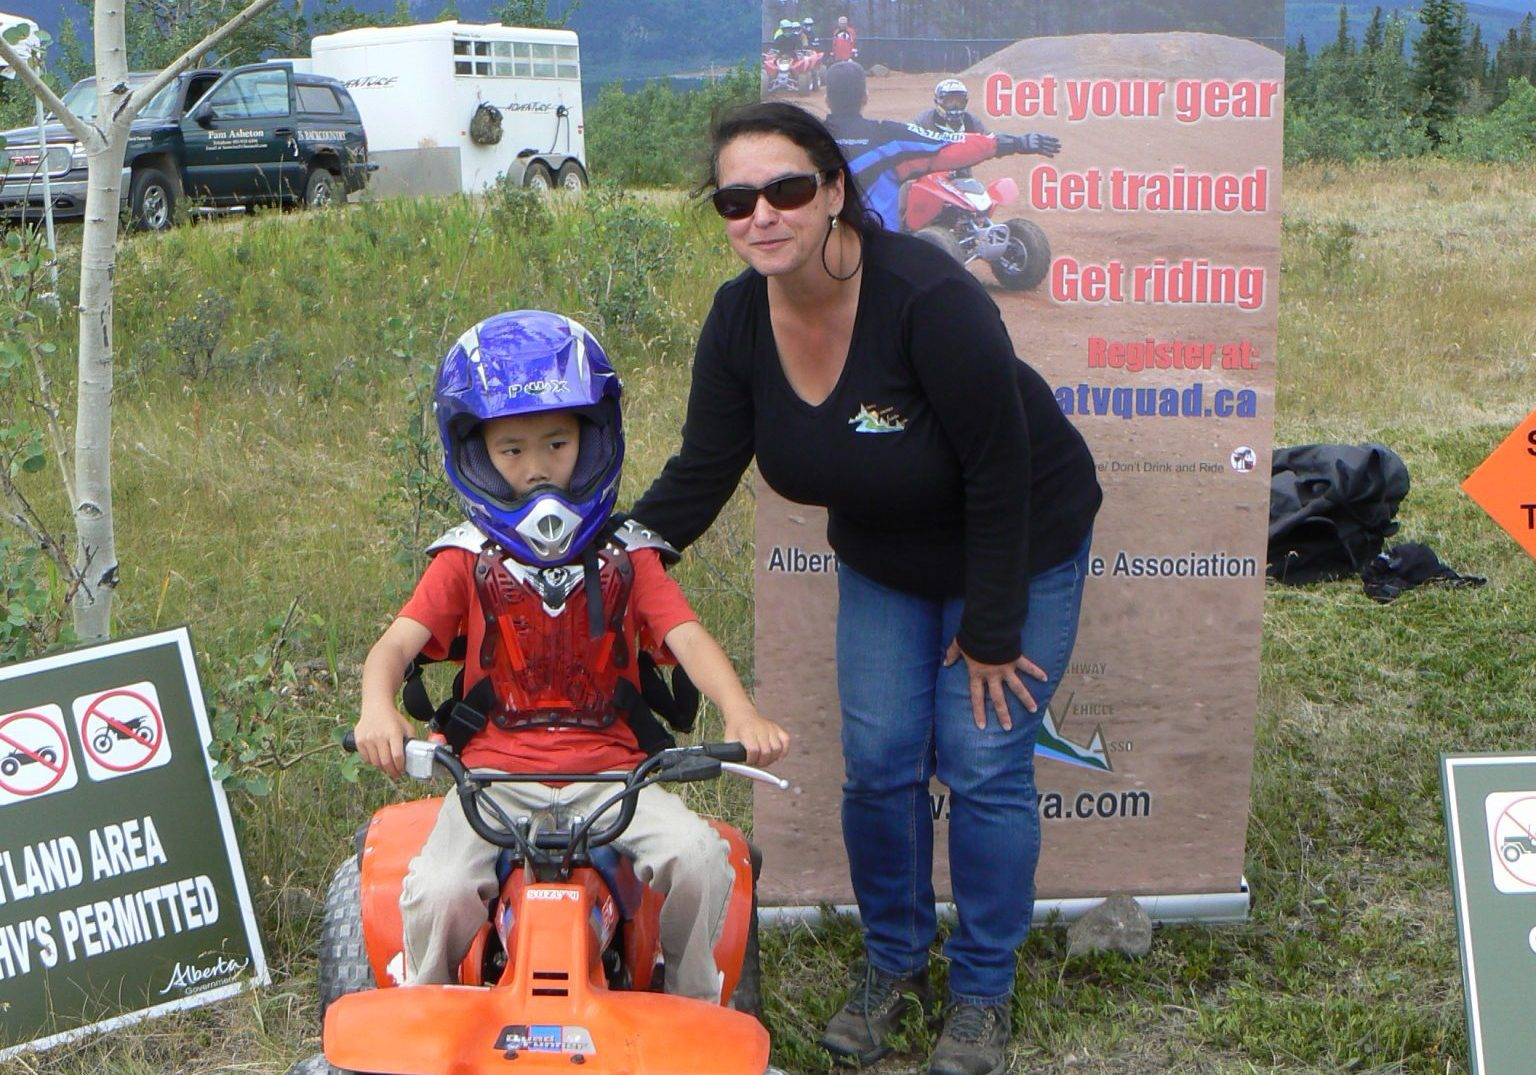 ALBERTA ATV TRAINING at Kananaskis Country Parks Day 2015 (2)